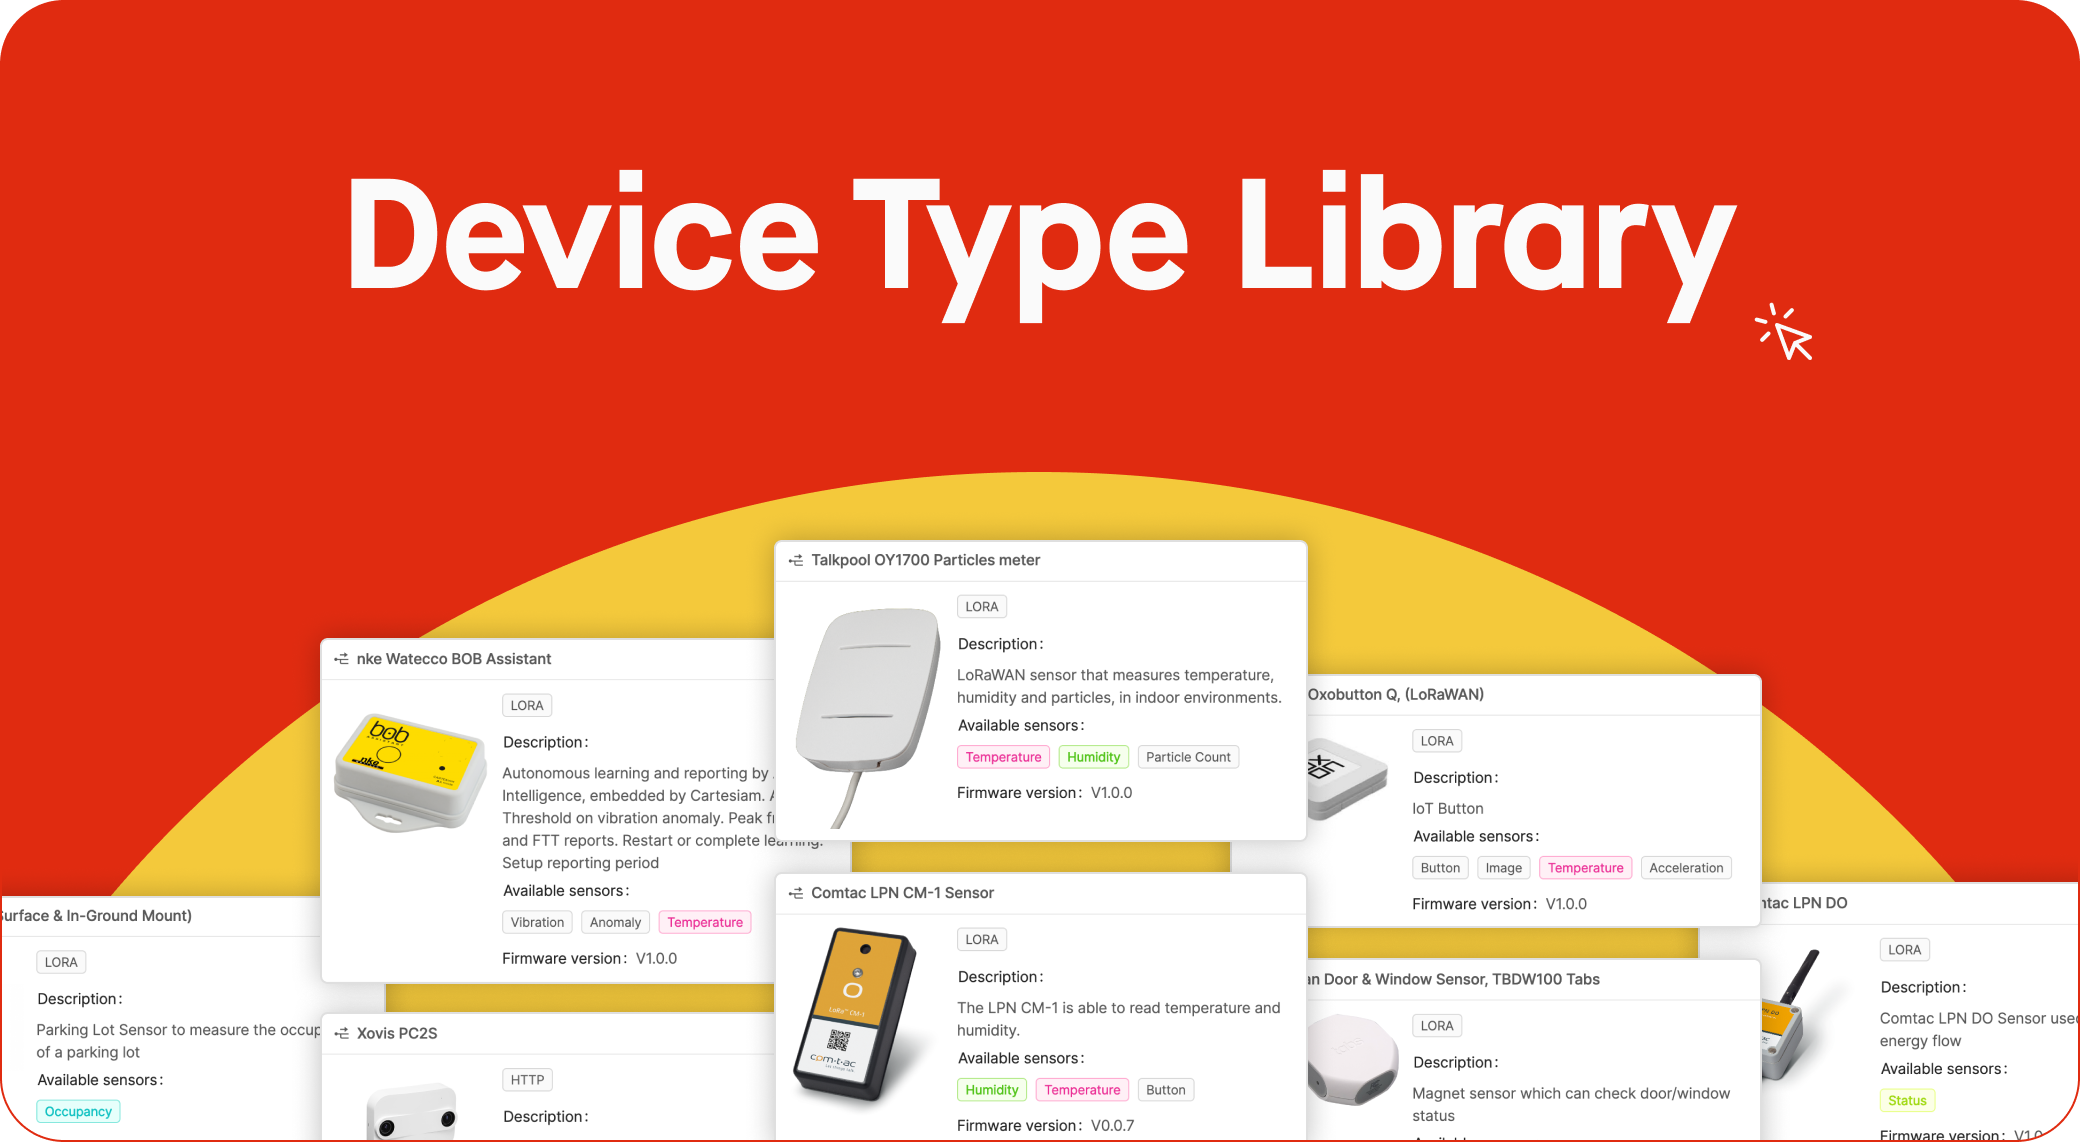 Device type library